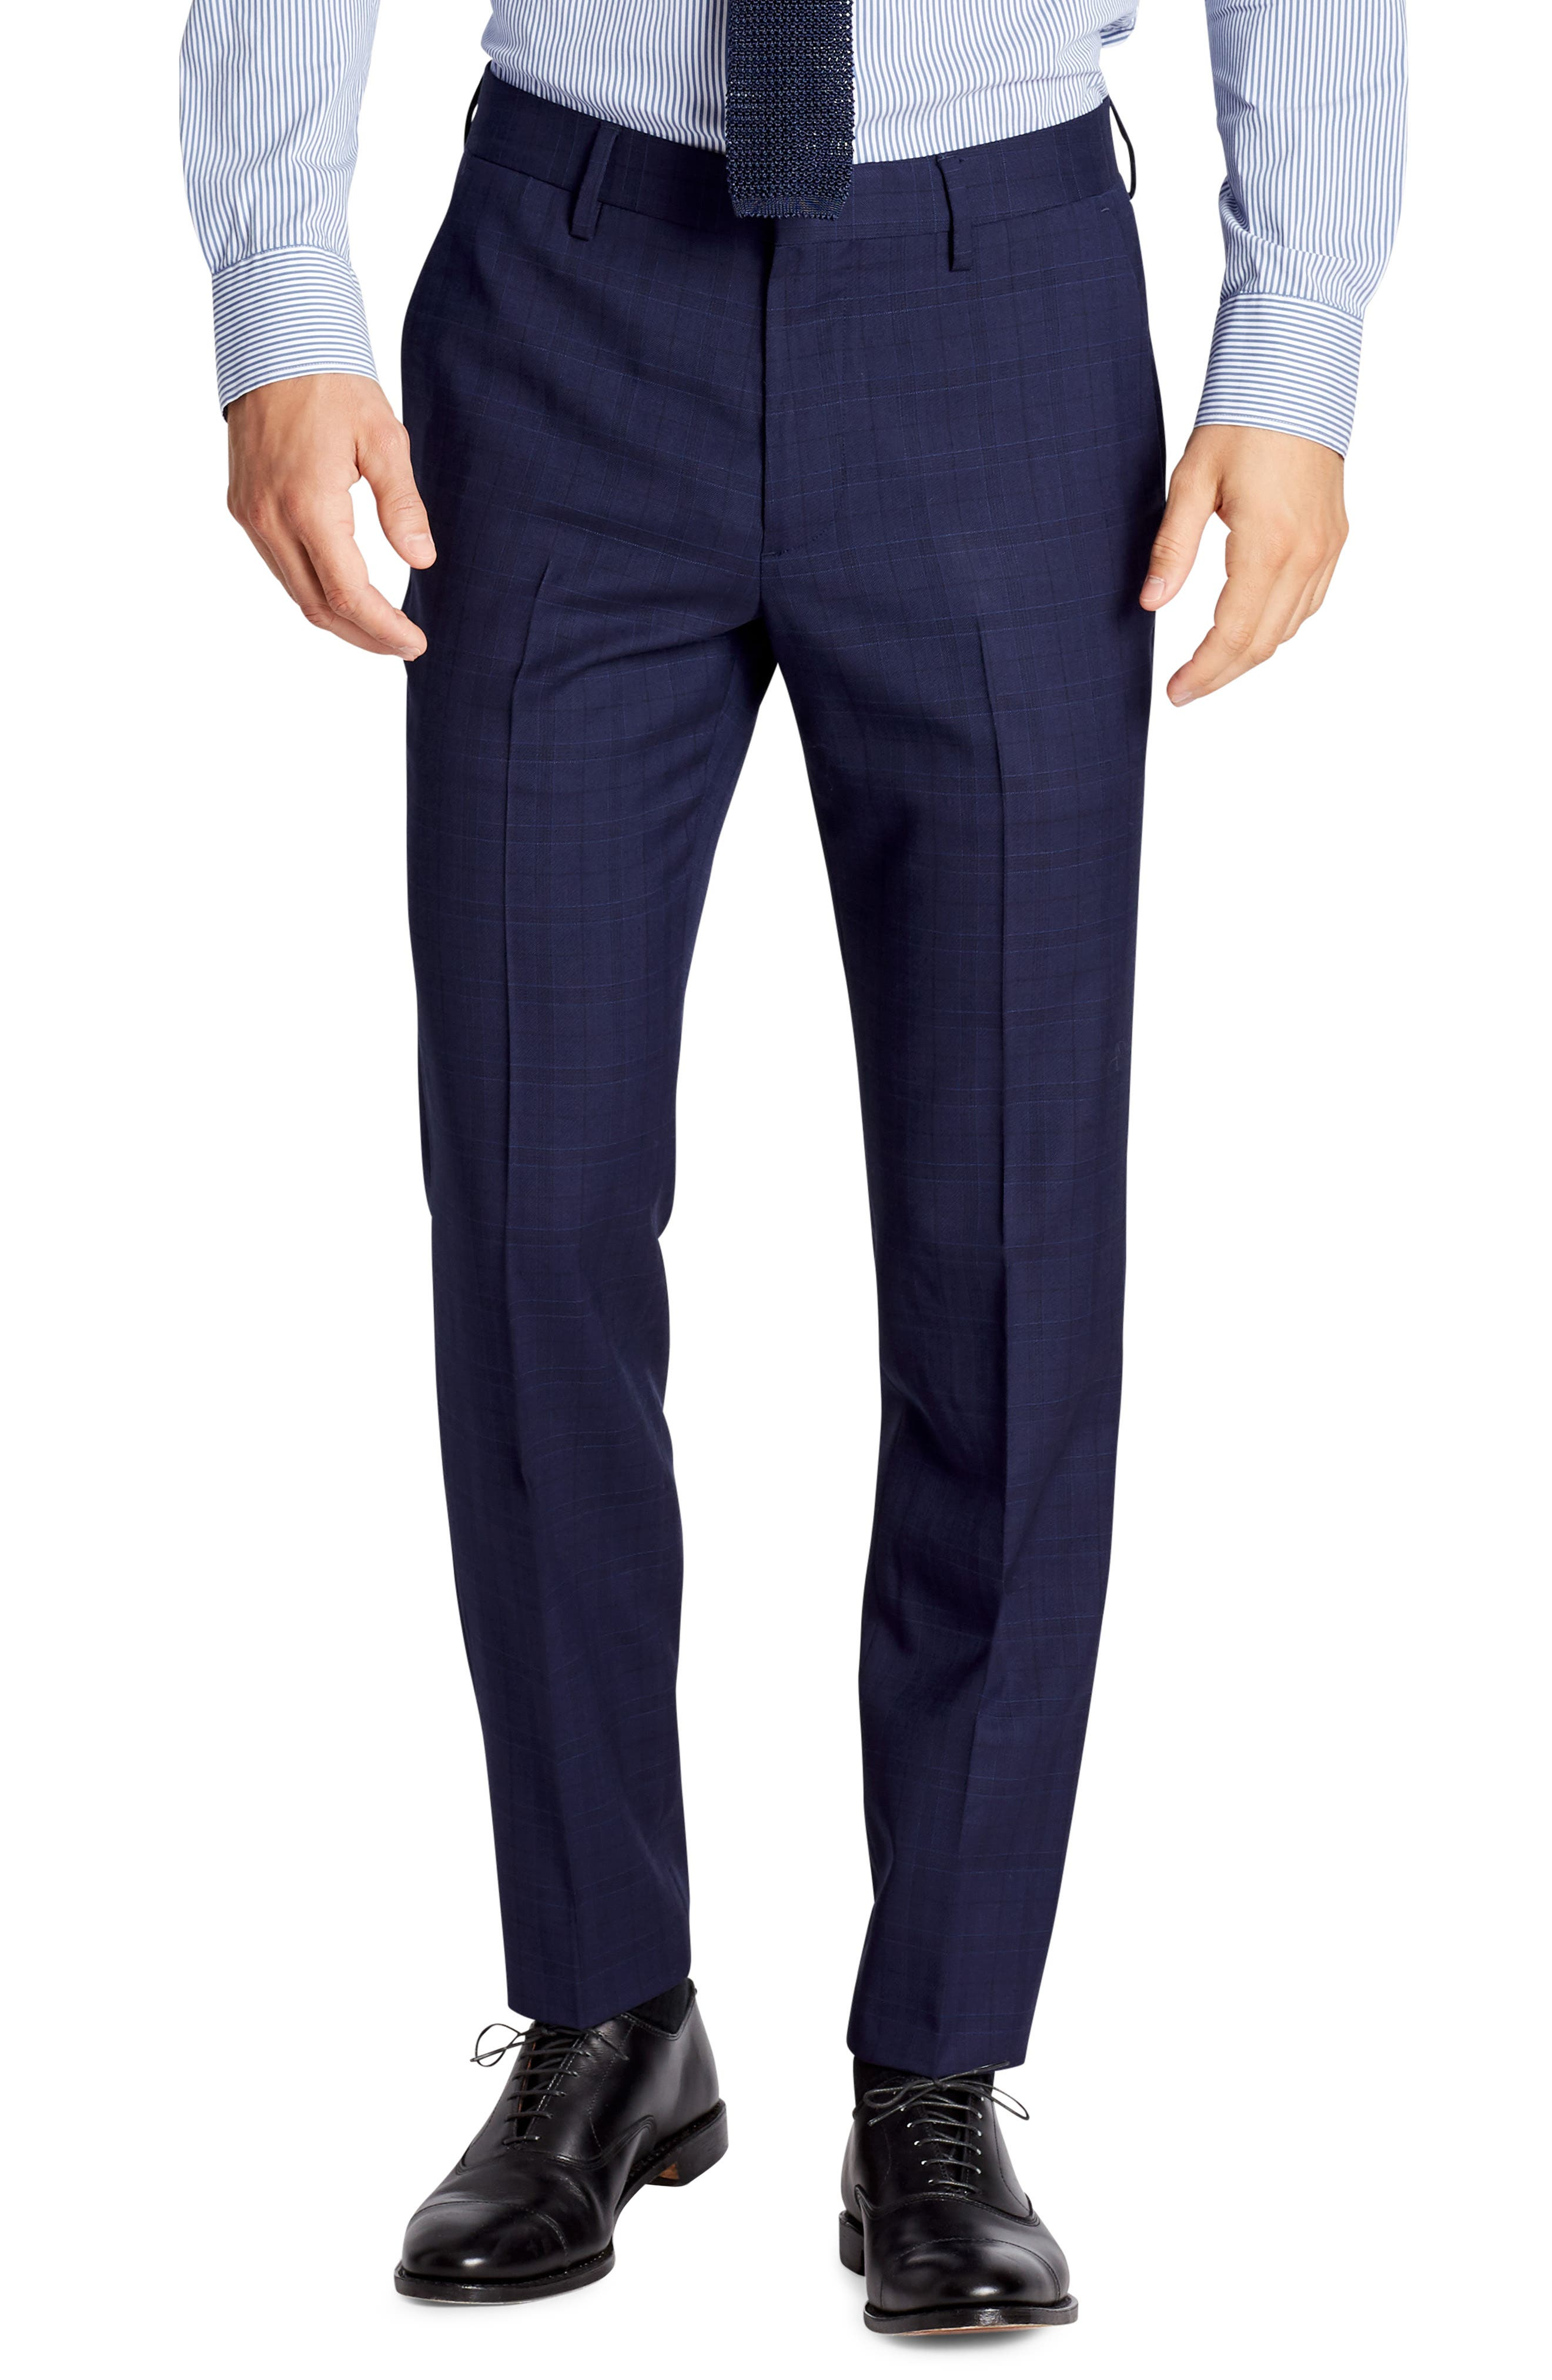 Jetsetter Flat Front Plaid Stretch Wool Trousers,                             Main thumbnail 1, color,                             Blue Plaid